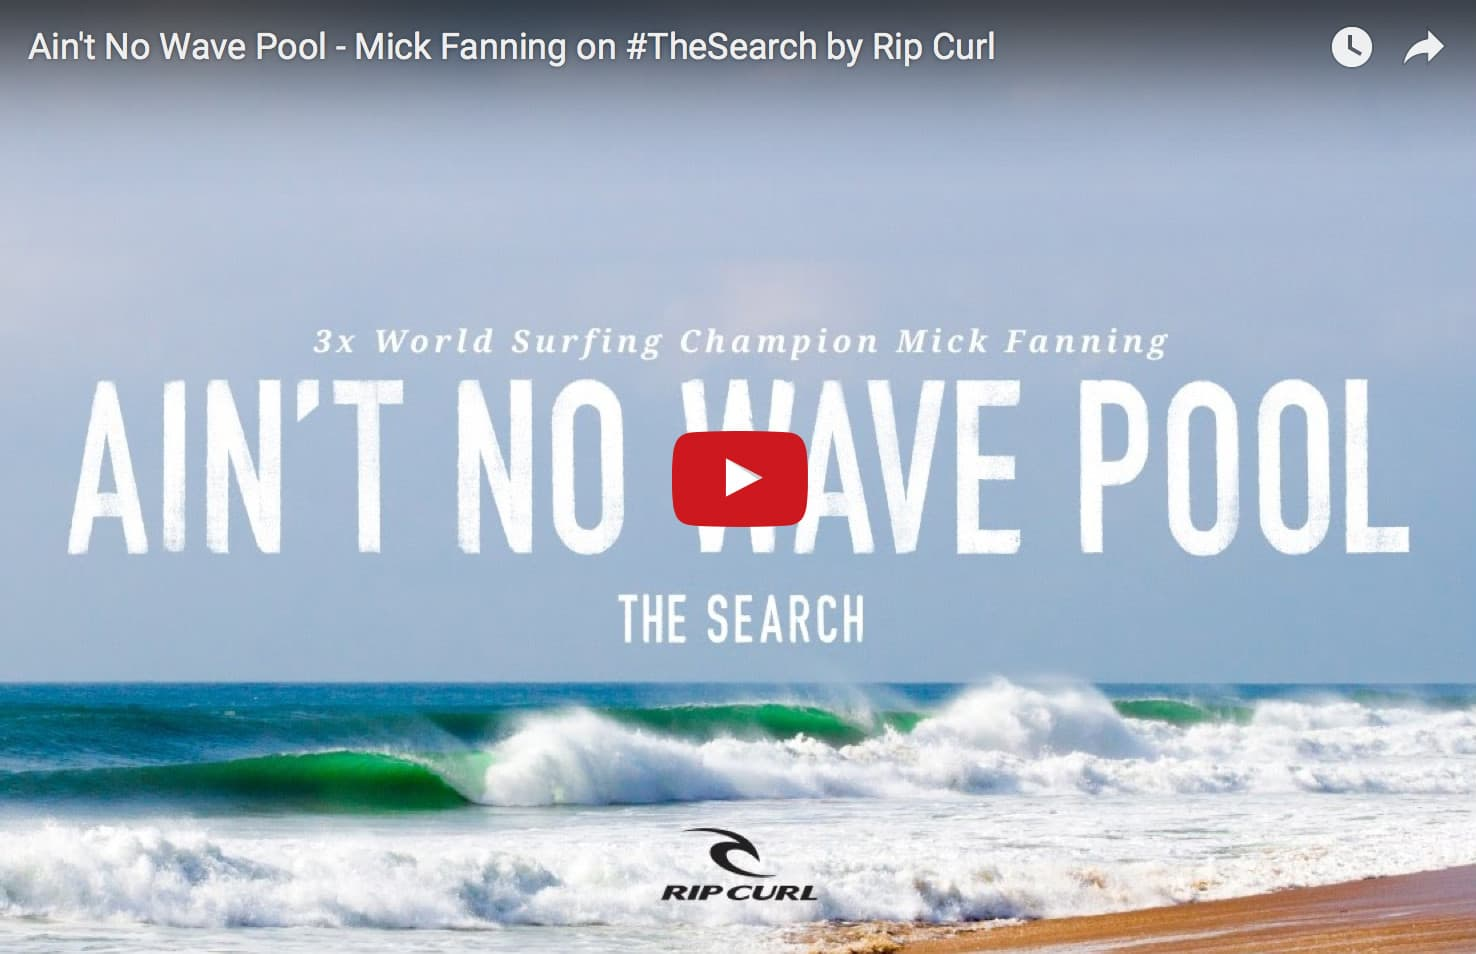 mick fanning secret wave